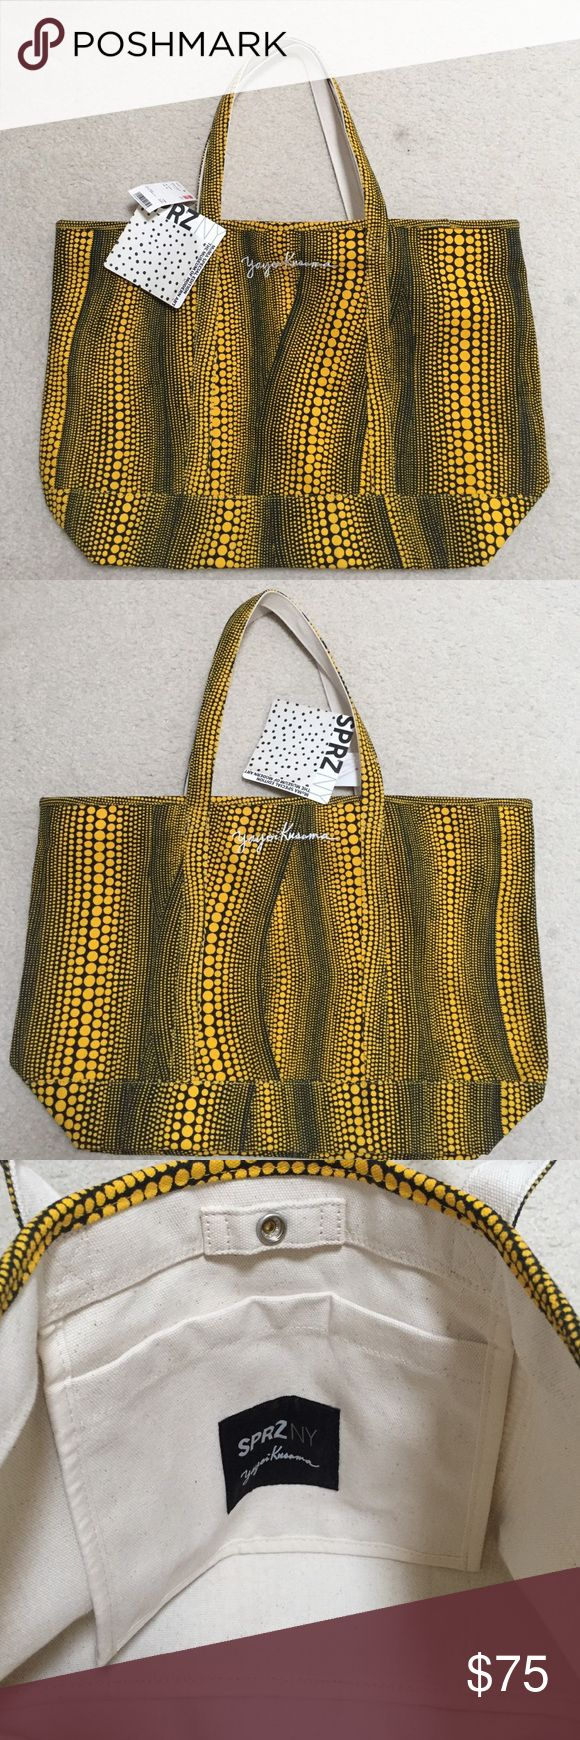 Uniqlo Yayoi Kusama Moma Edition canvas tote Uniqlo Yayoi Kusama Moma Special Edition canvas tote in yellow. New with tags, never been used. Uniqlo Bags Totes